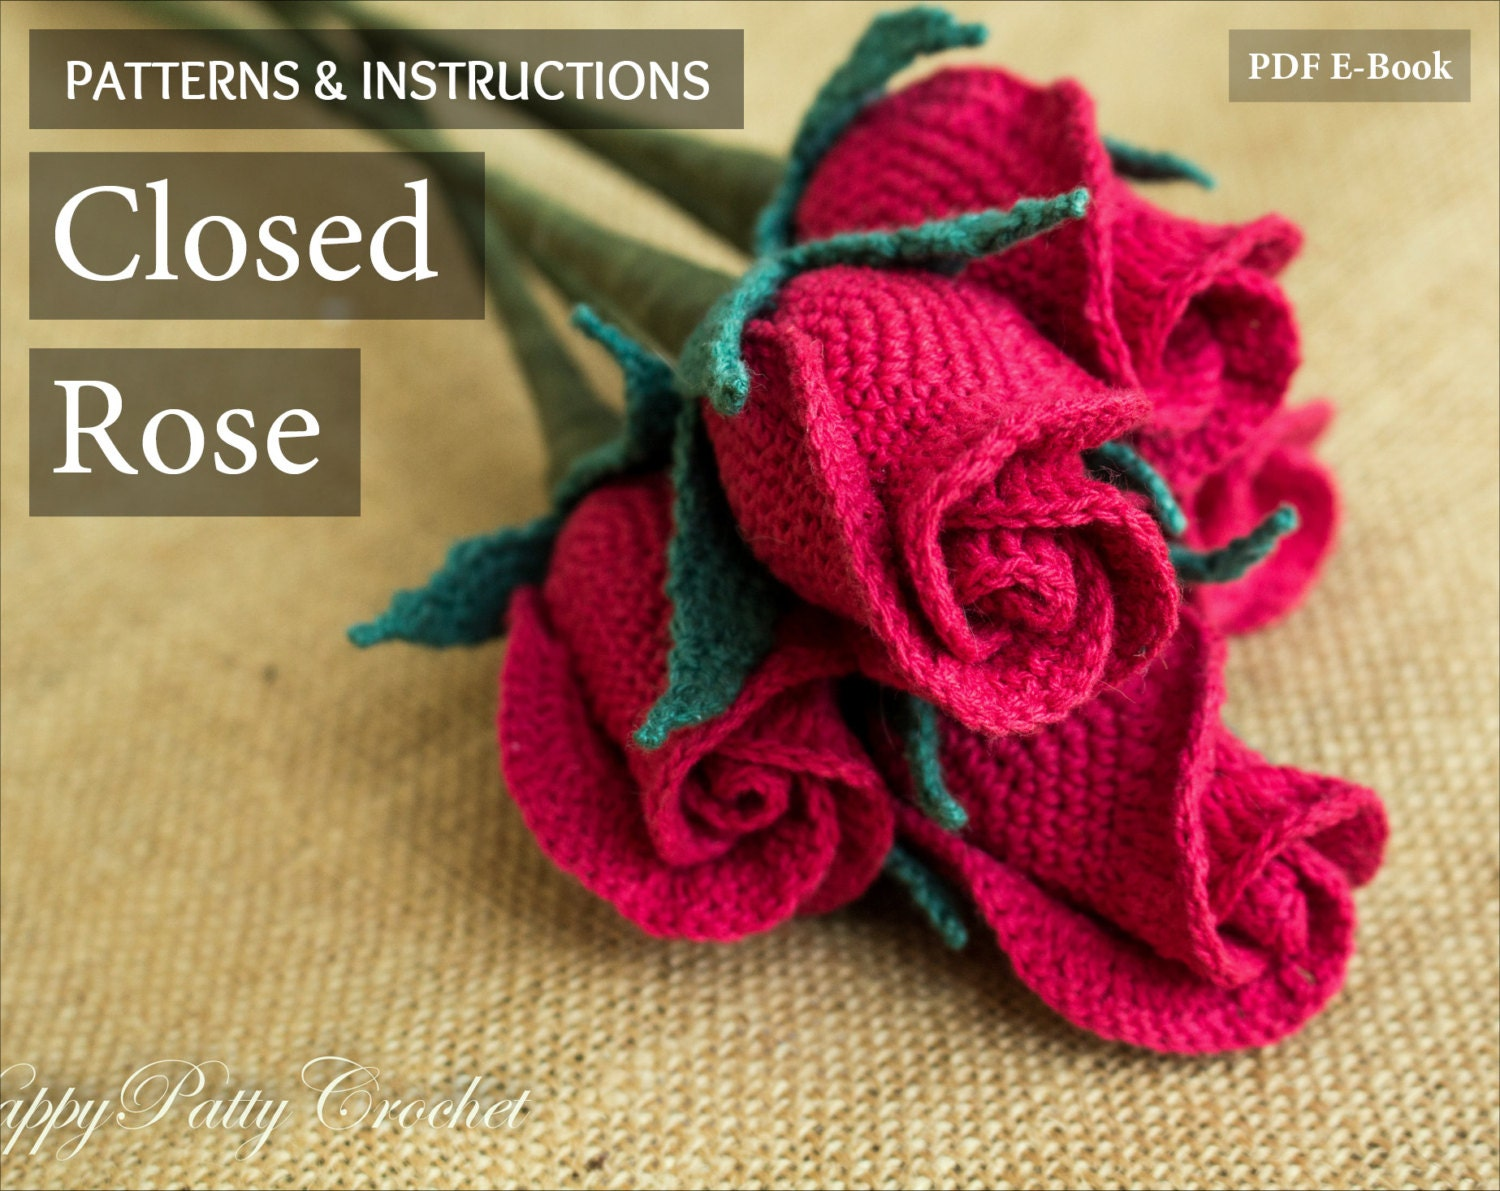 Crochet flower pattern crochet closed rose pattern crochet zoom bankloansurffo Images